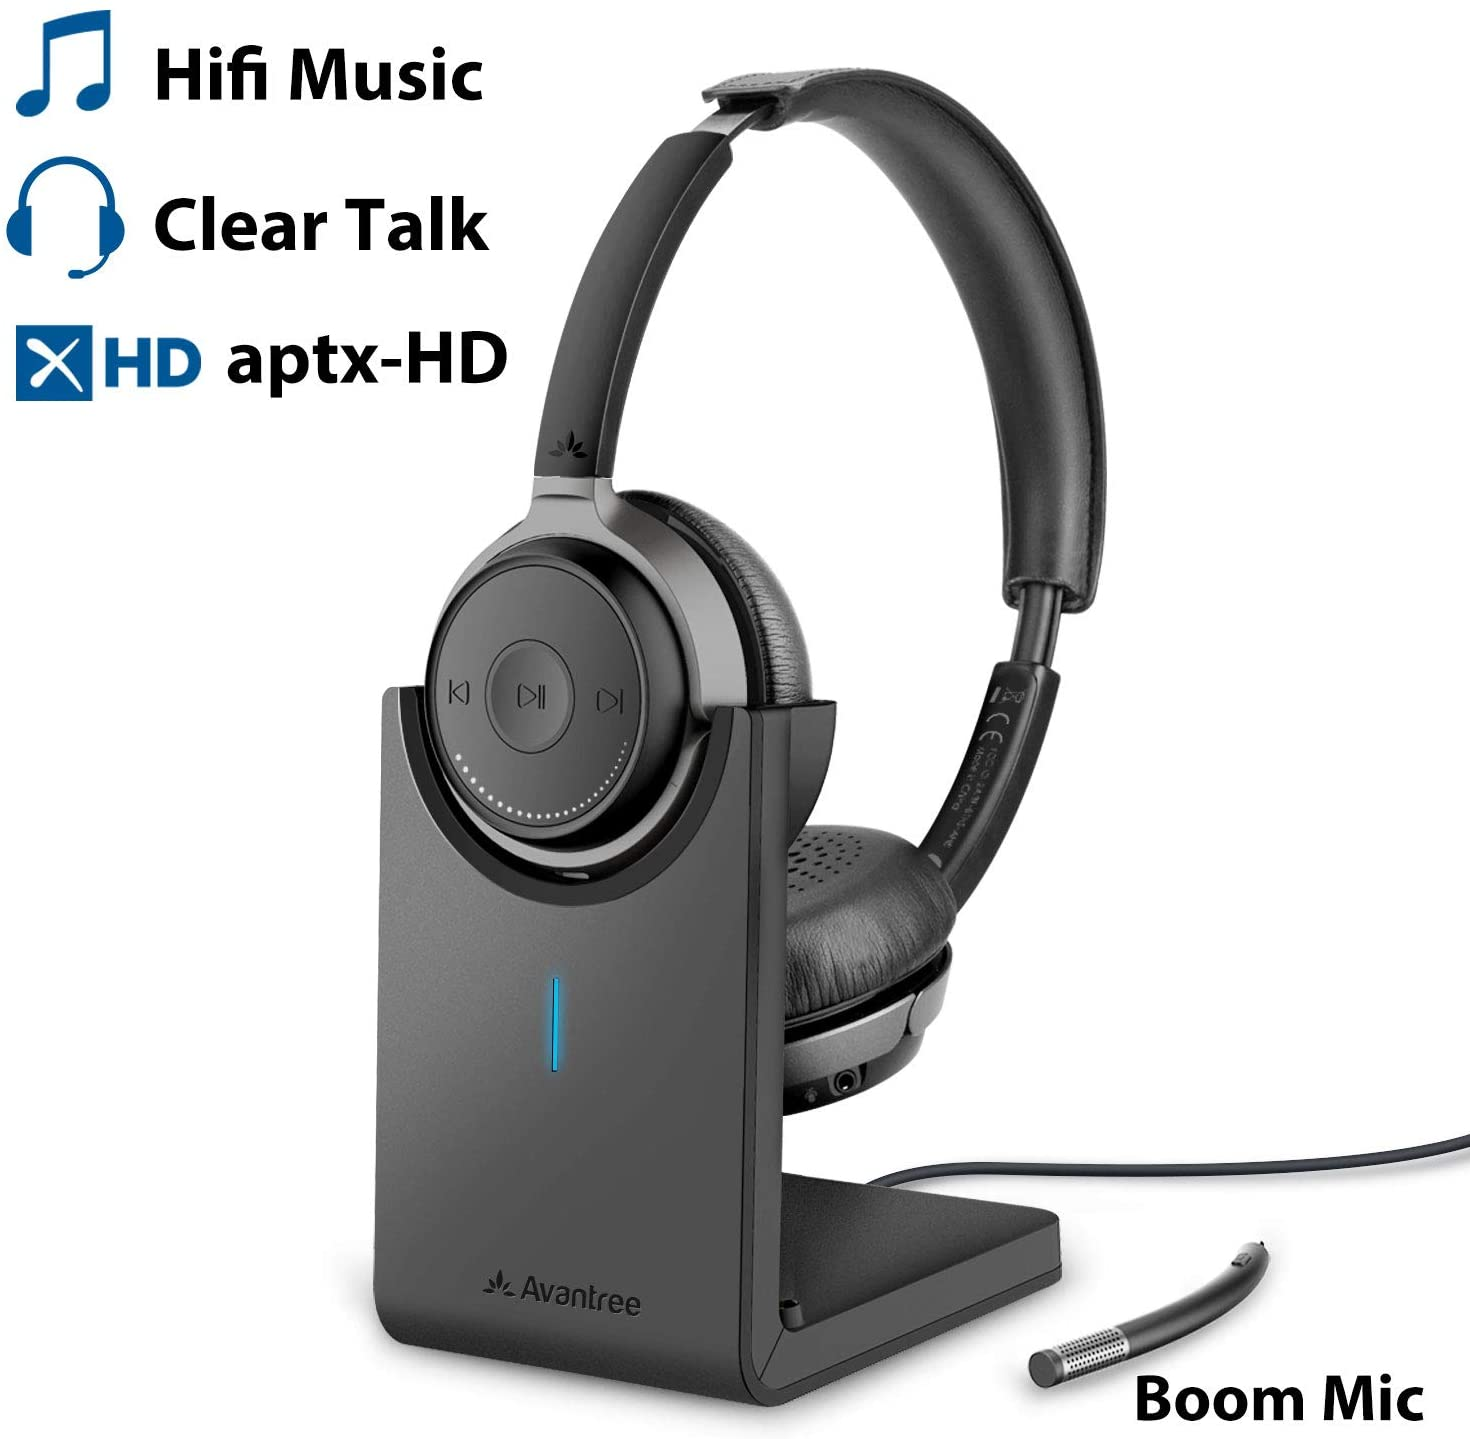 Avantree Alto Clair Bluetooth 5.0 Headset with Microphone for Computer PC Laptop, aptX HD Hi-Fi Music Sound, Low Latency, Wireless Headphones with Boom Mic for Home Office, Skype, Calls, TV